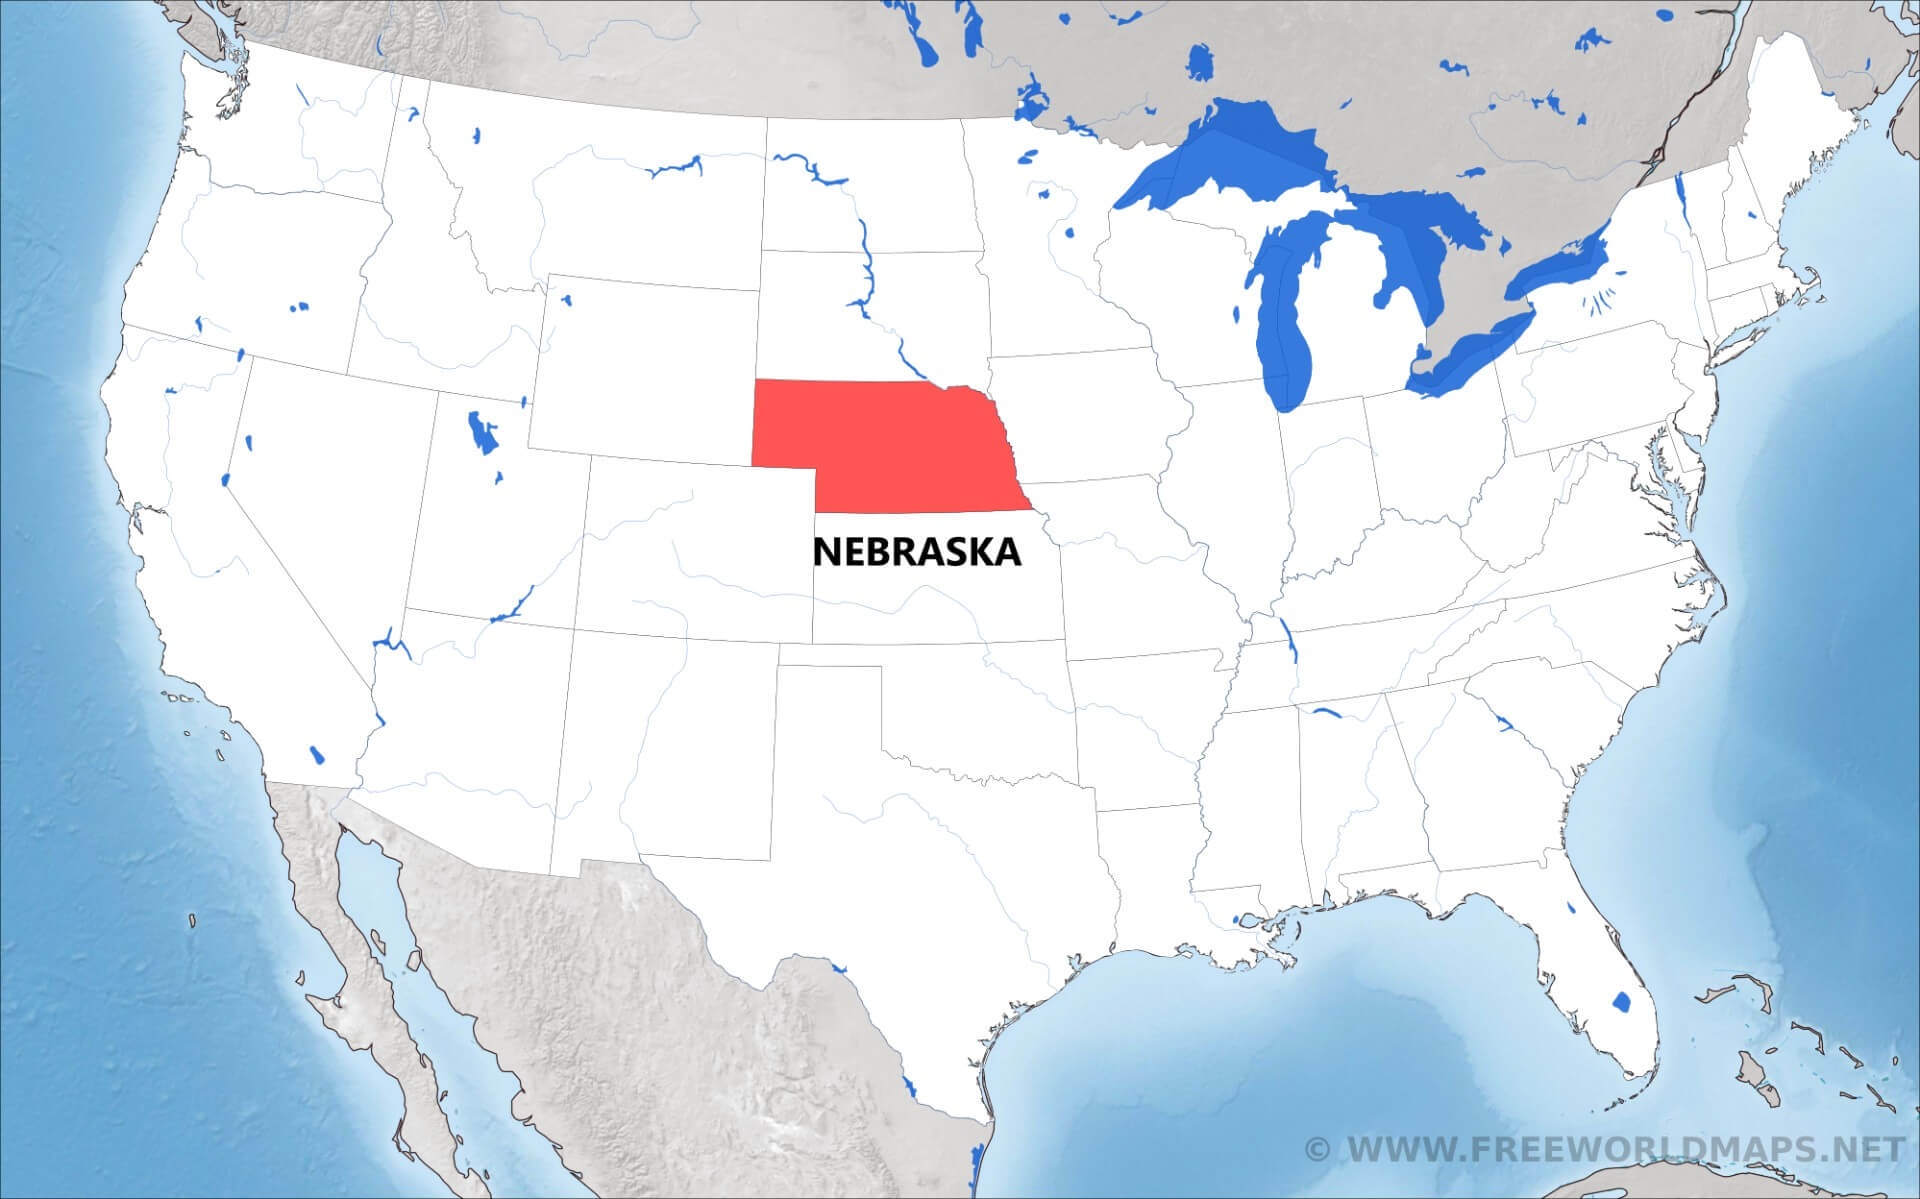 Where is Nebraska located on the map